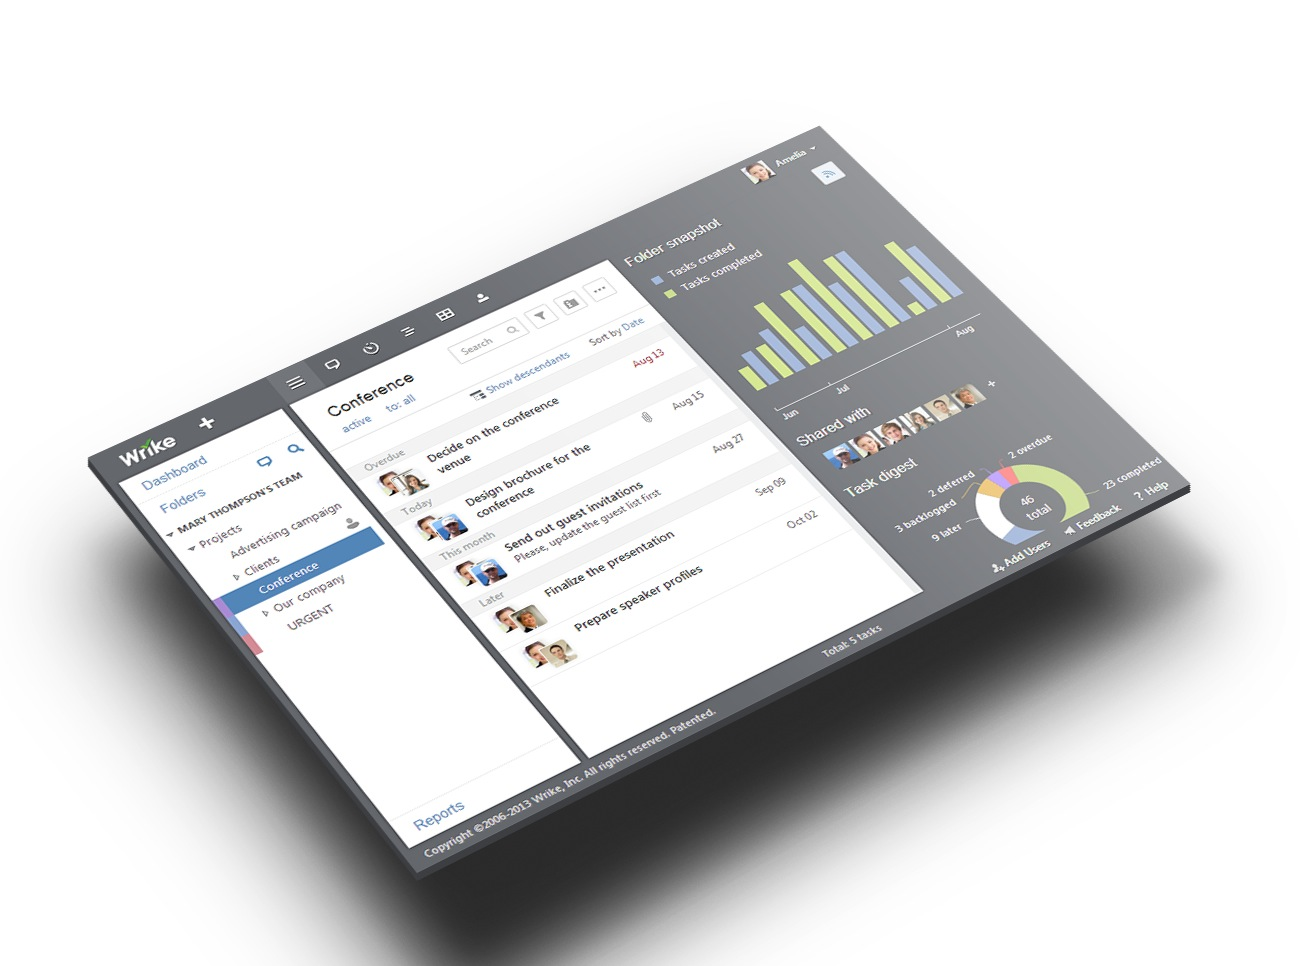 Wrike Raises $10M From Bain Capital for Project Management Tools